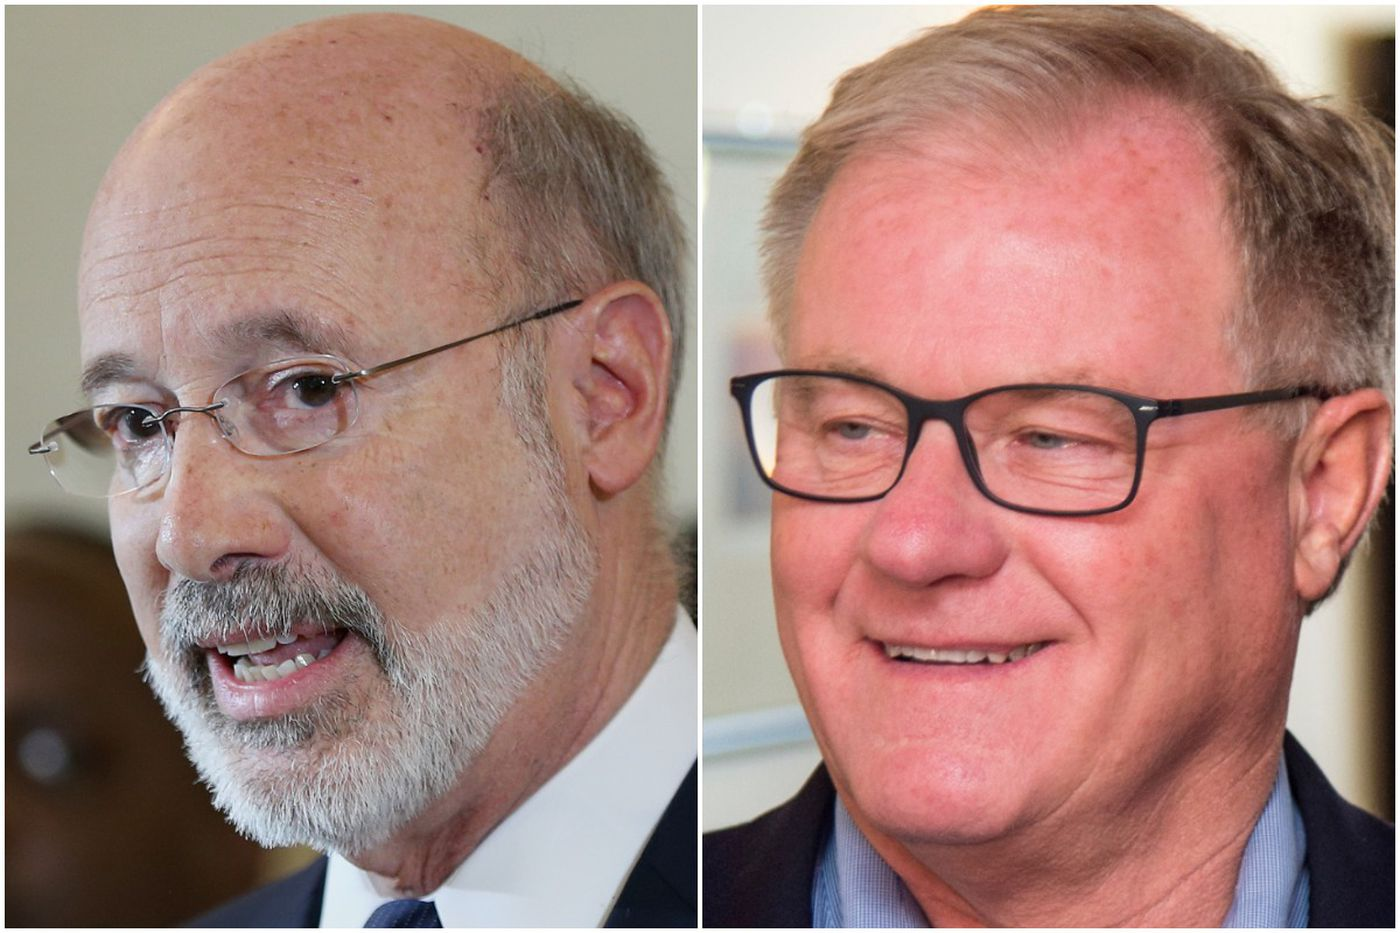 Gov. Wolf's campaign advertising budget: $10M since June